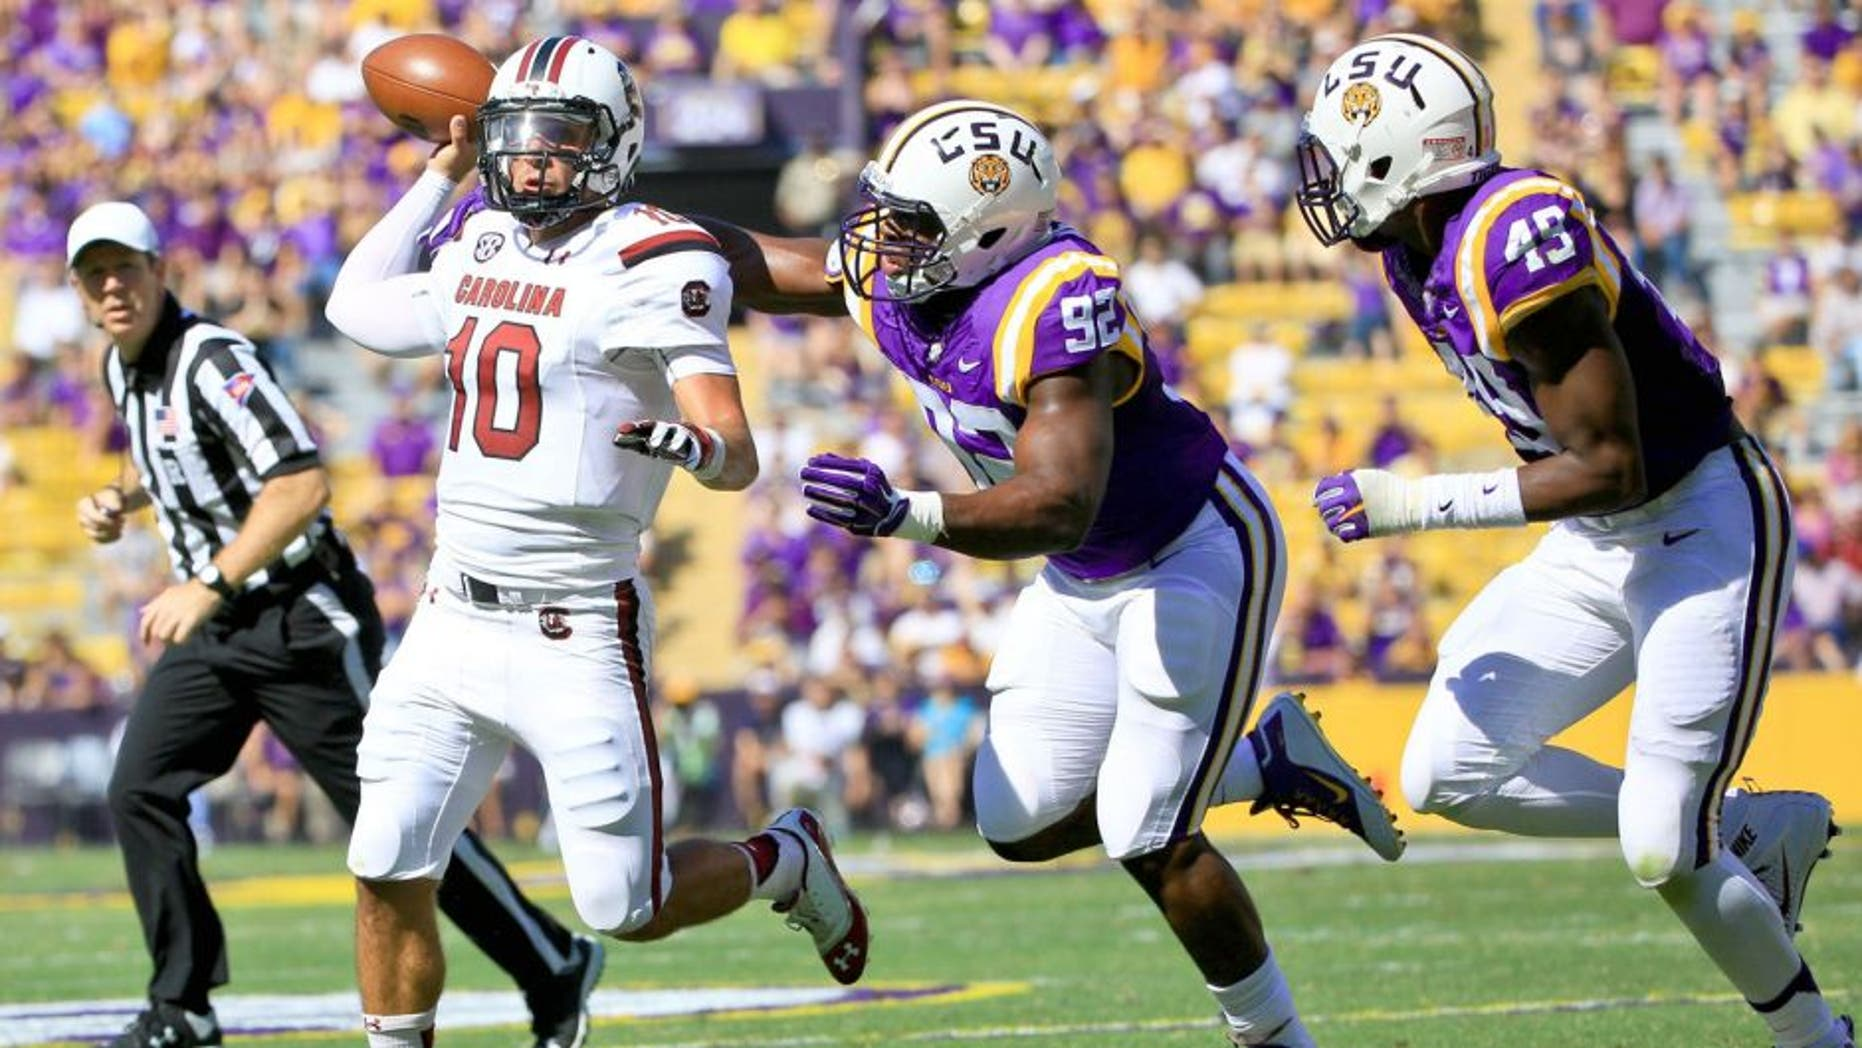 Oct 10, 2015; Baton Rouge, LA, USA; South Carolina Gamecocks quarterback Perry Orth (10) is pressured by LSU Tigers defensive end Lewis Neal (92) during the first quarter of a game at Tiger Stadium. Mandatory Credit: Derick E. Hingle-USA TODAY Sports